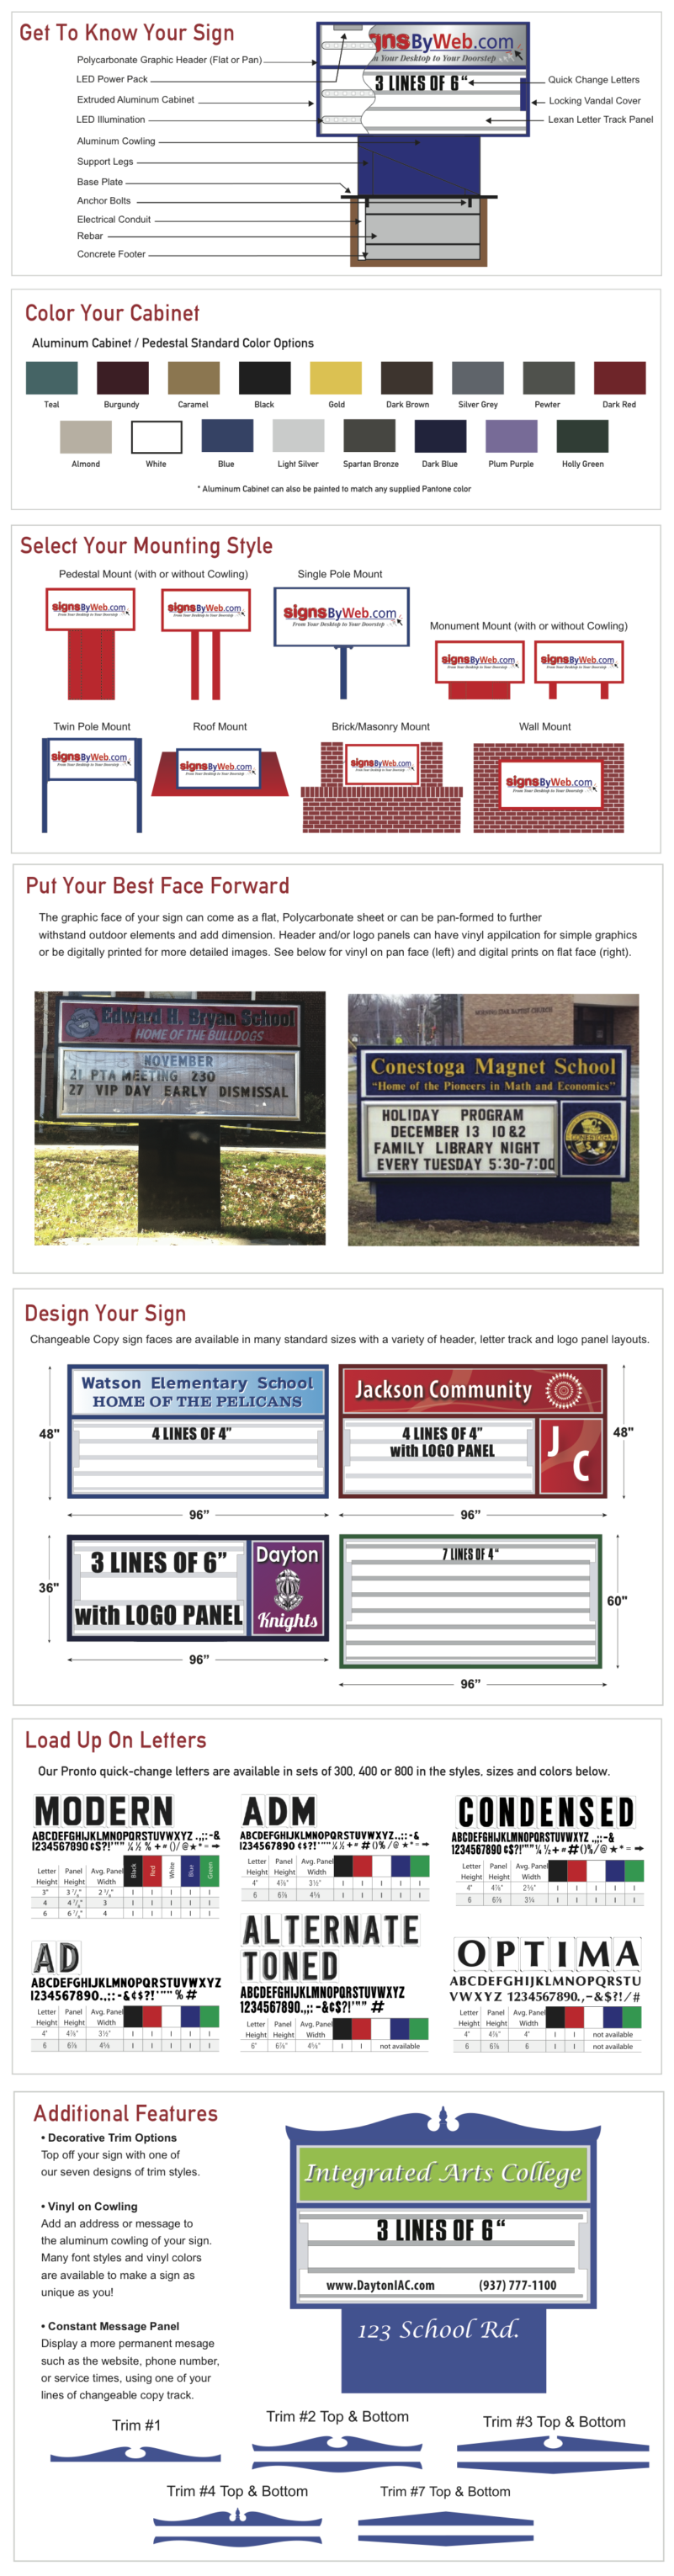 Outdoor Light Public Works Signs Changeable Copy Faces